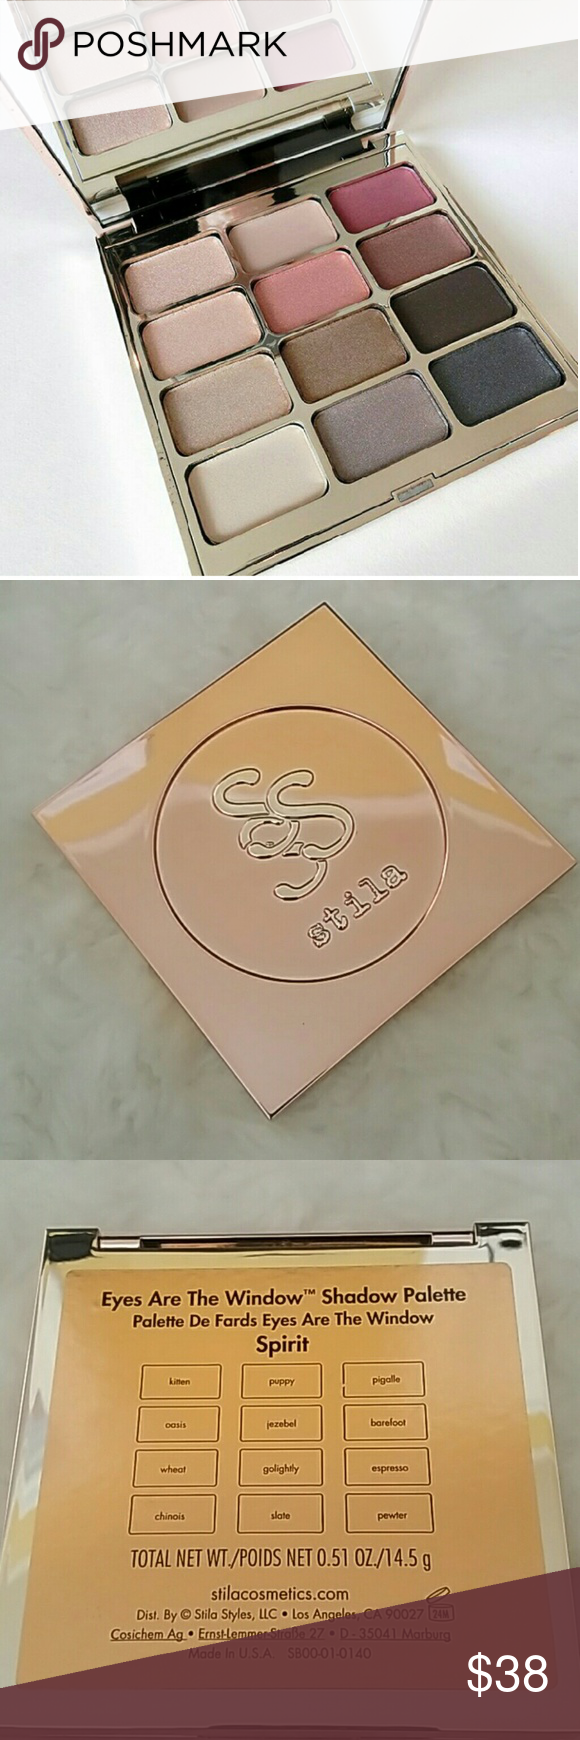 Stila Eyes Are the Window Eyeshadow Palette~Spirit Brand New without Box Stila Spirit Eyes Are the Window Eyeshadow Palette. This palette has never been Swatched or Used. Spirit shades include: Kitten (light champagne shimmer)Puppy (matte medium )Pigalle (rich deep burgundy matte)Oasis (light peach shimmer)Jezebel (light copper shimmer)Barefoot (warm brown shimmer)Wheat (light taupe shimmer)Golightly (medium bronze shimmer)Espresso (deep warm brown matte)Chinois (light cream matte)Slate…